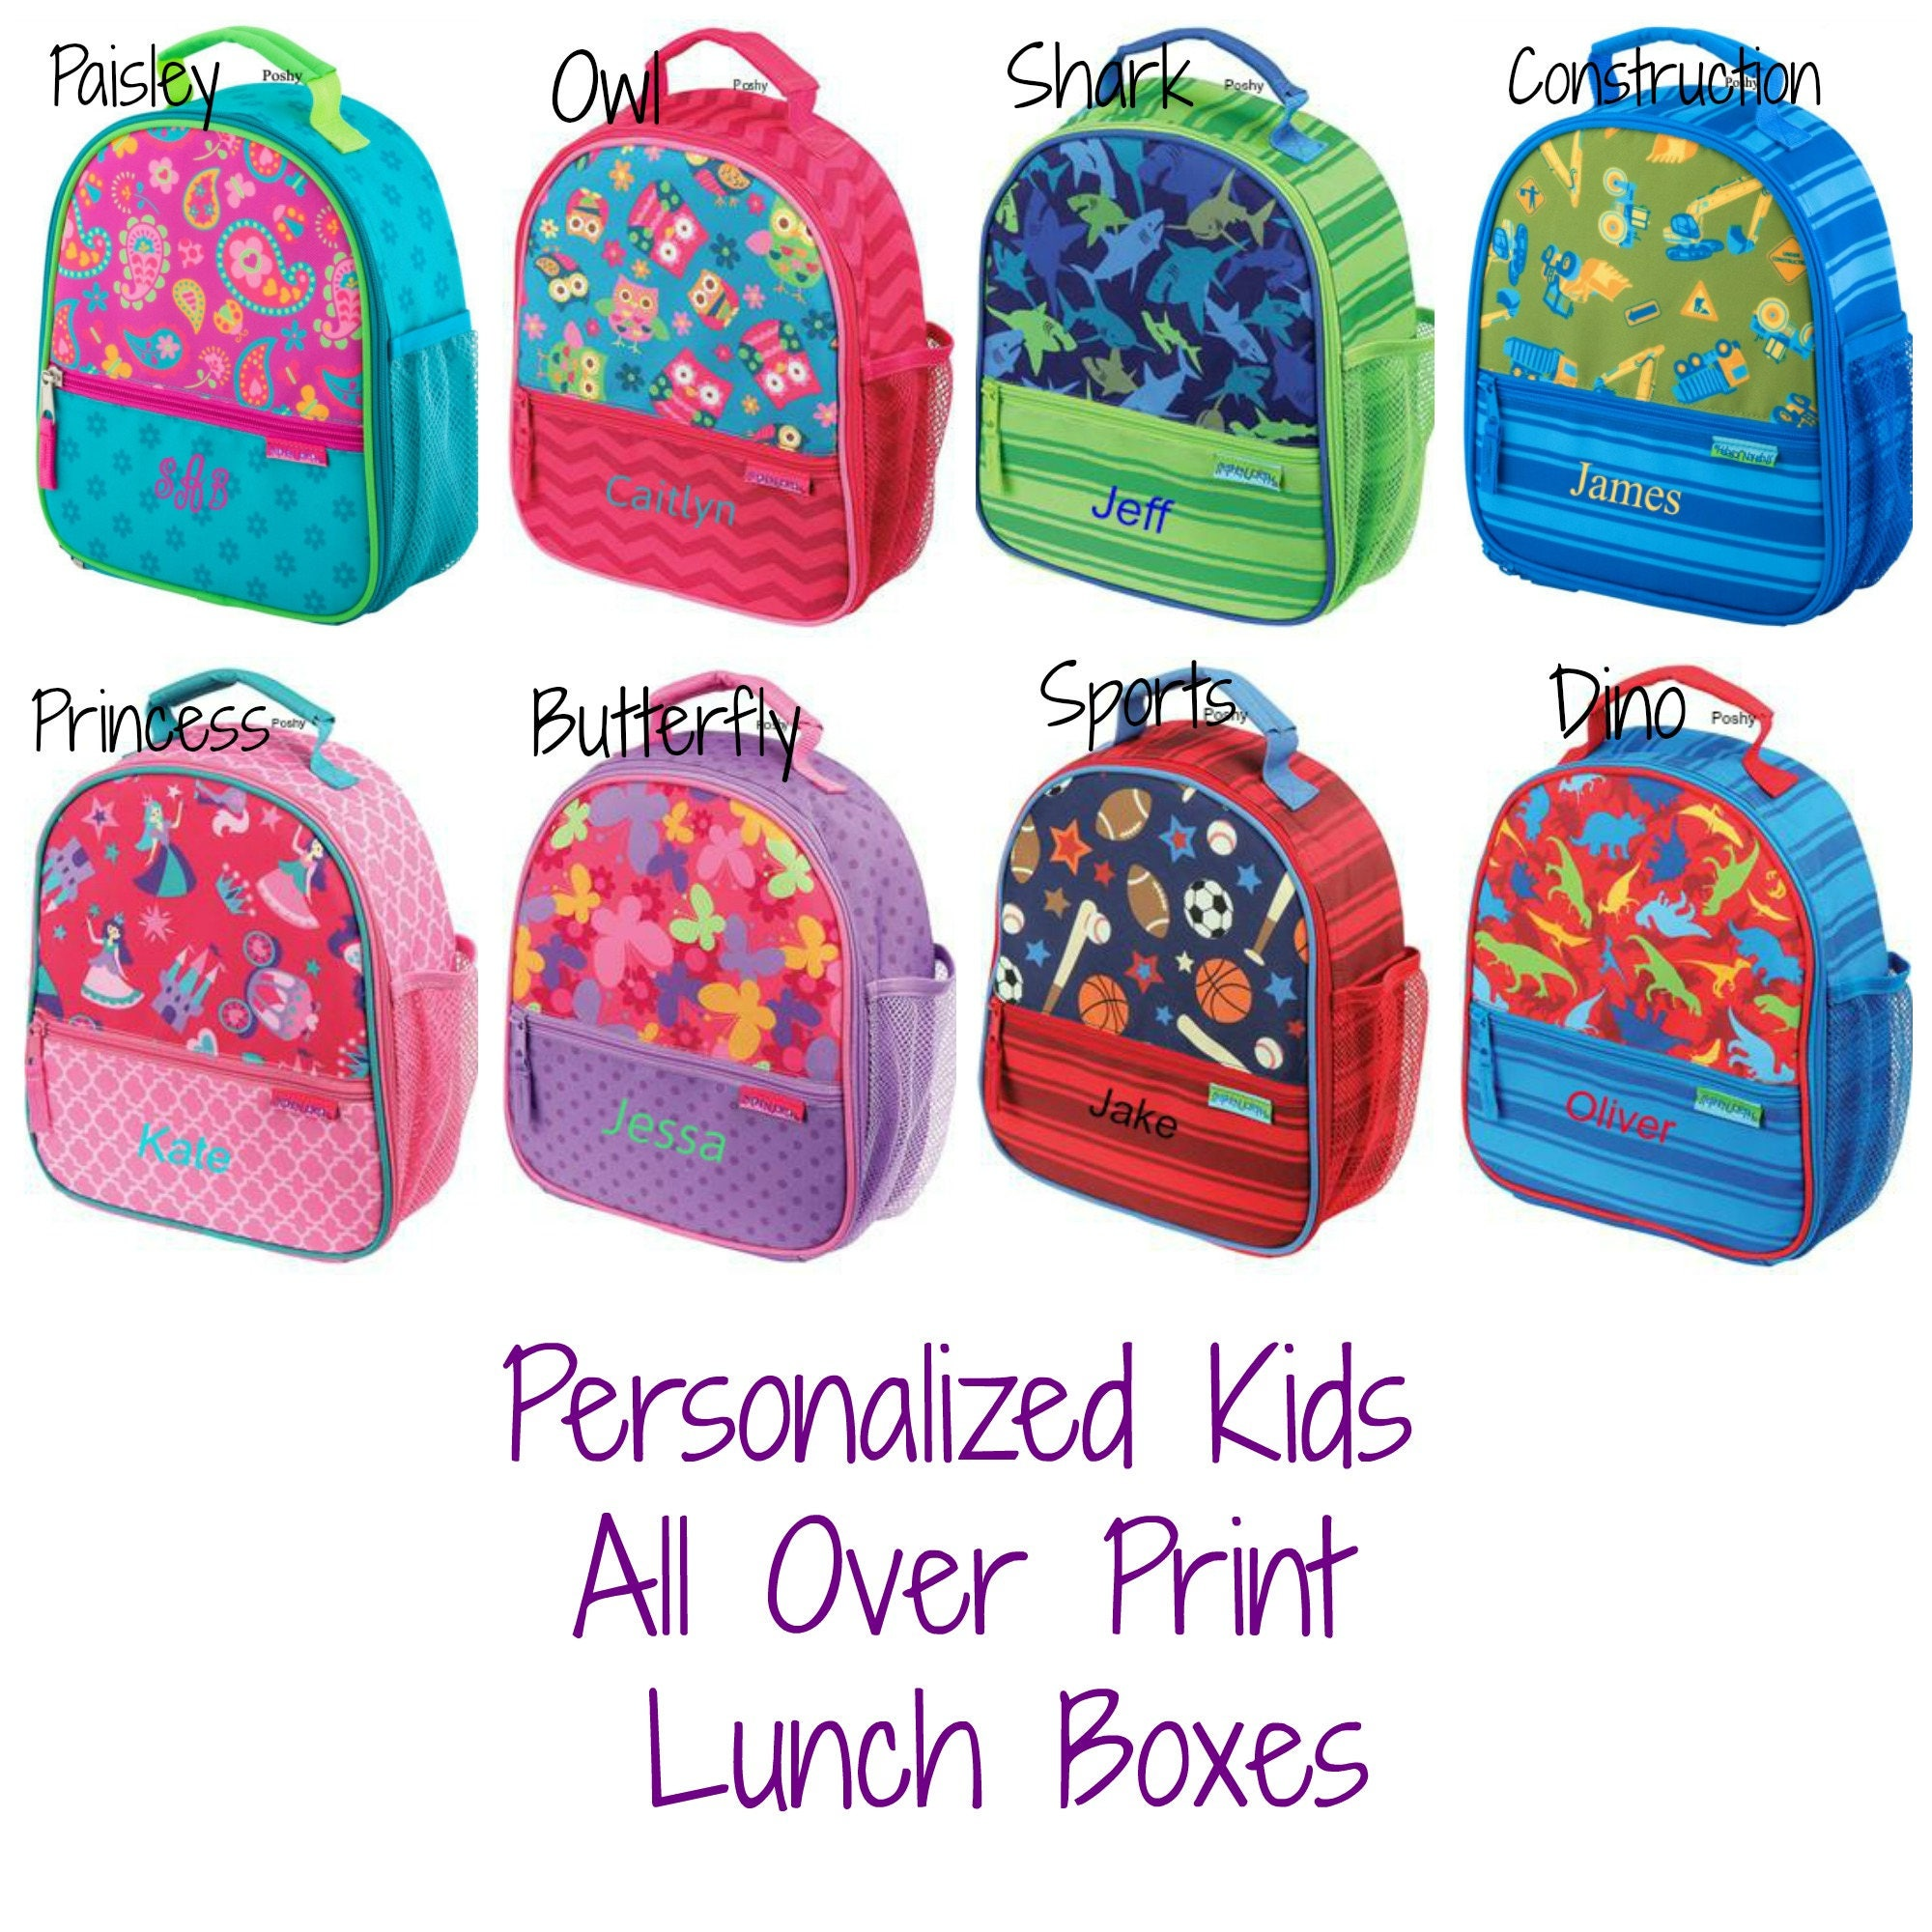 Shop back to school accessories including personalized backpacks, monogrammed bookbags, monogram lunch bags and more. Custom embroidery included in your choice of thread colors & fonts.